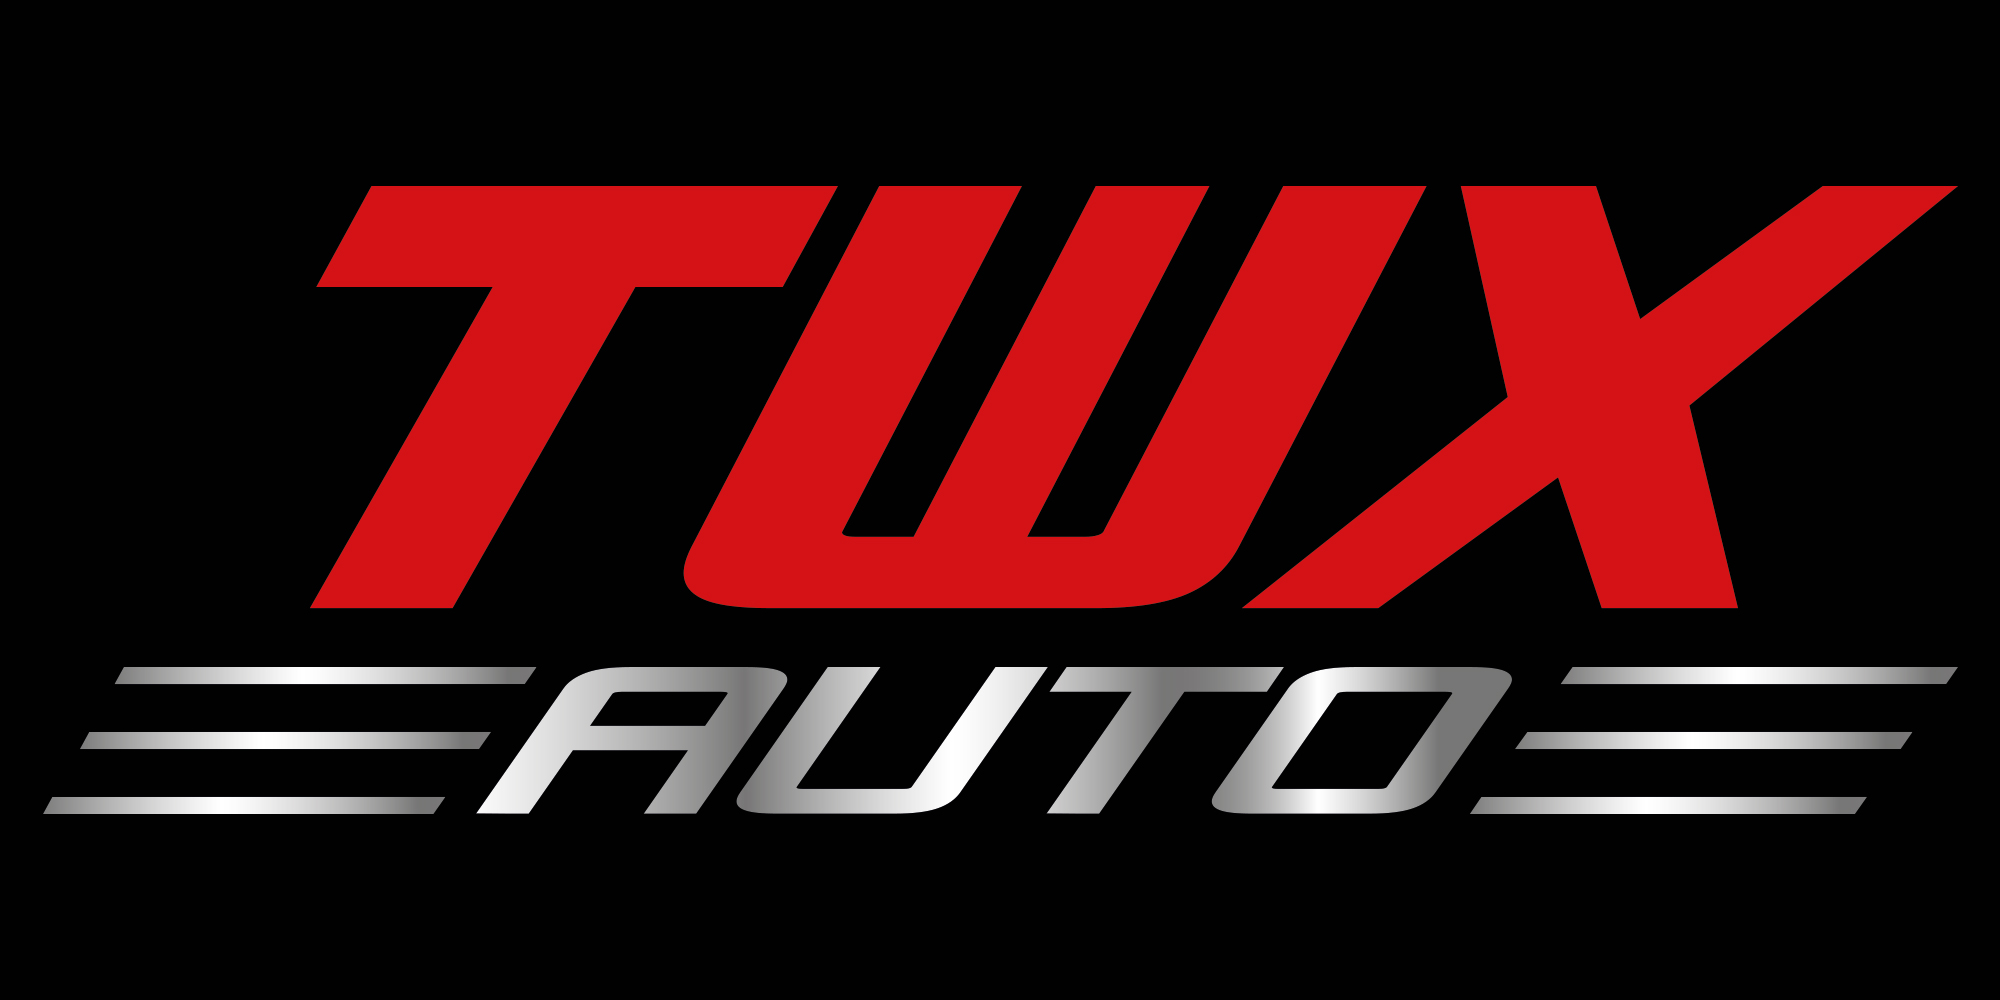 TWX Auto Focuses on Bringing High Quality Car Care Products to Consumers